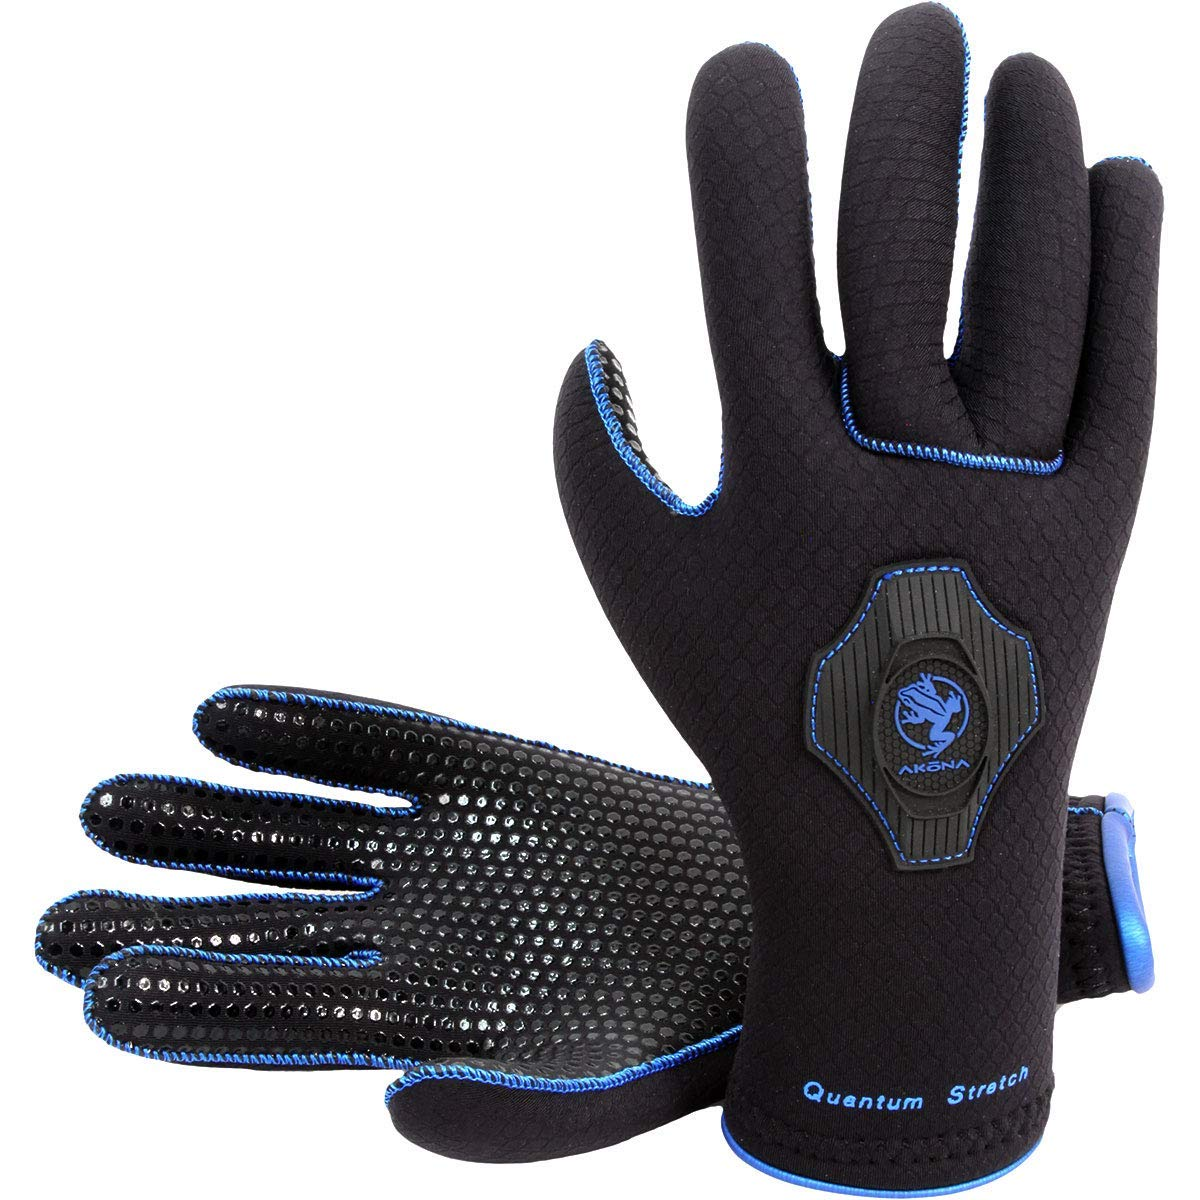 AKONA 3.5mm Quantum Stretch Dive Gloves, Small